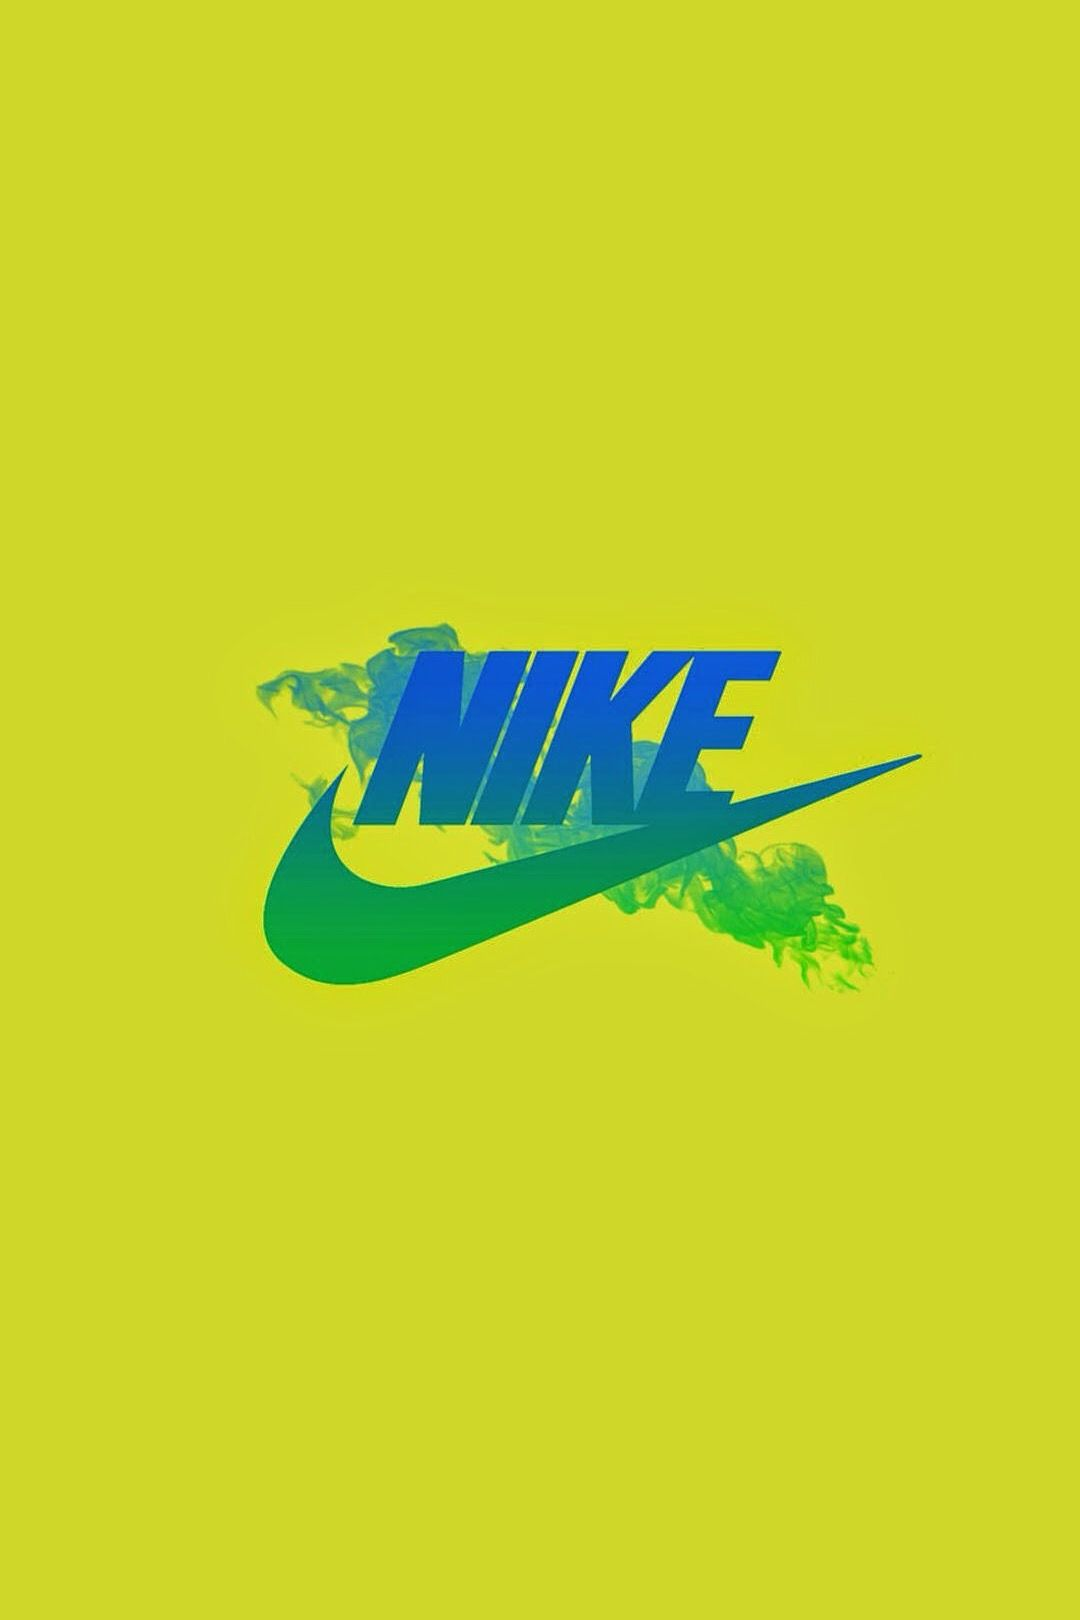 online store 7caf6 301bf  hypebeast  wallpaper  allezlesbleus  iphone  android  background  오웬 샌디  Nike. Visit. April 2019